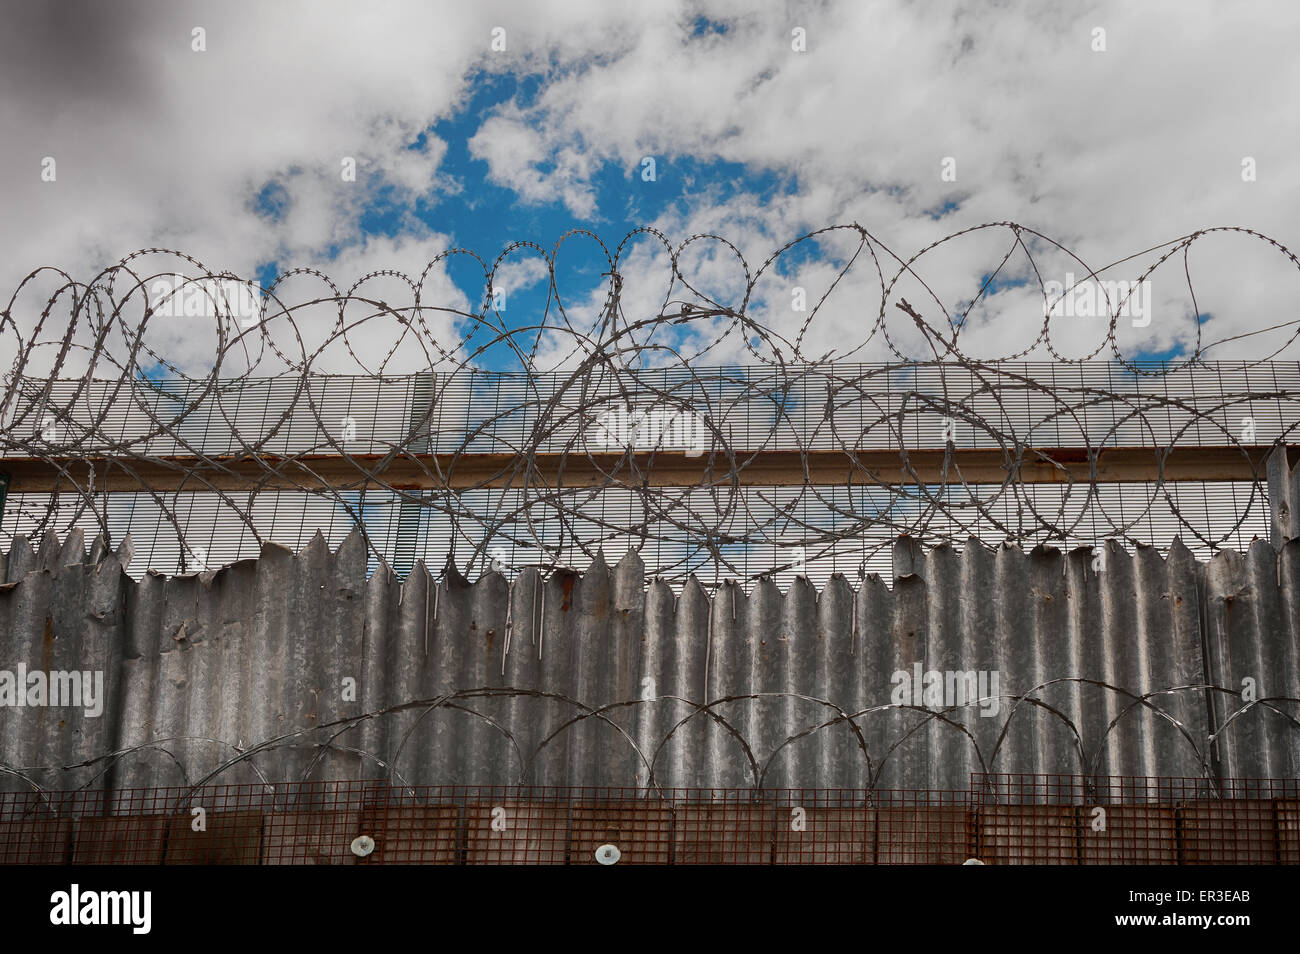 Galvanised high security razor wire and barbed wires deterrent to slow down climbing over walls with mass of corrugated - Stock Image